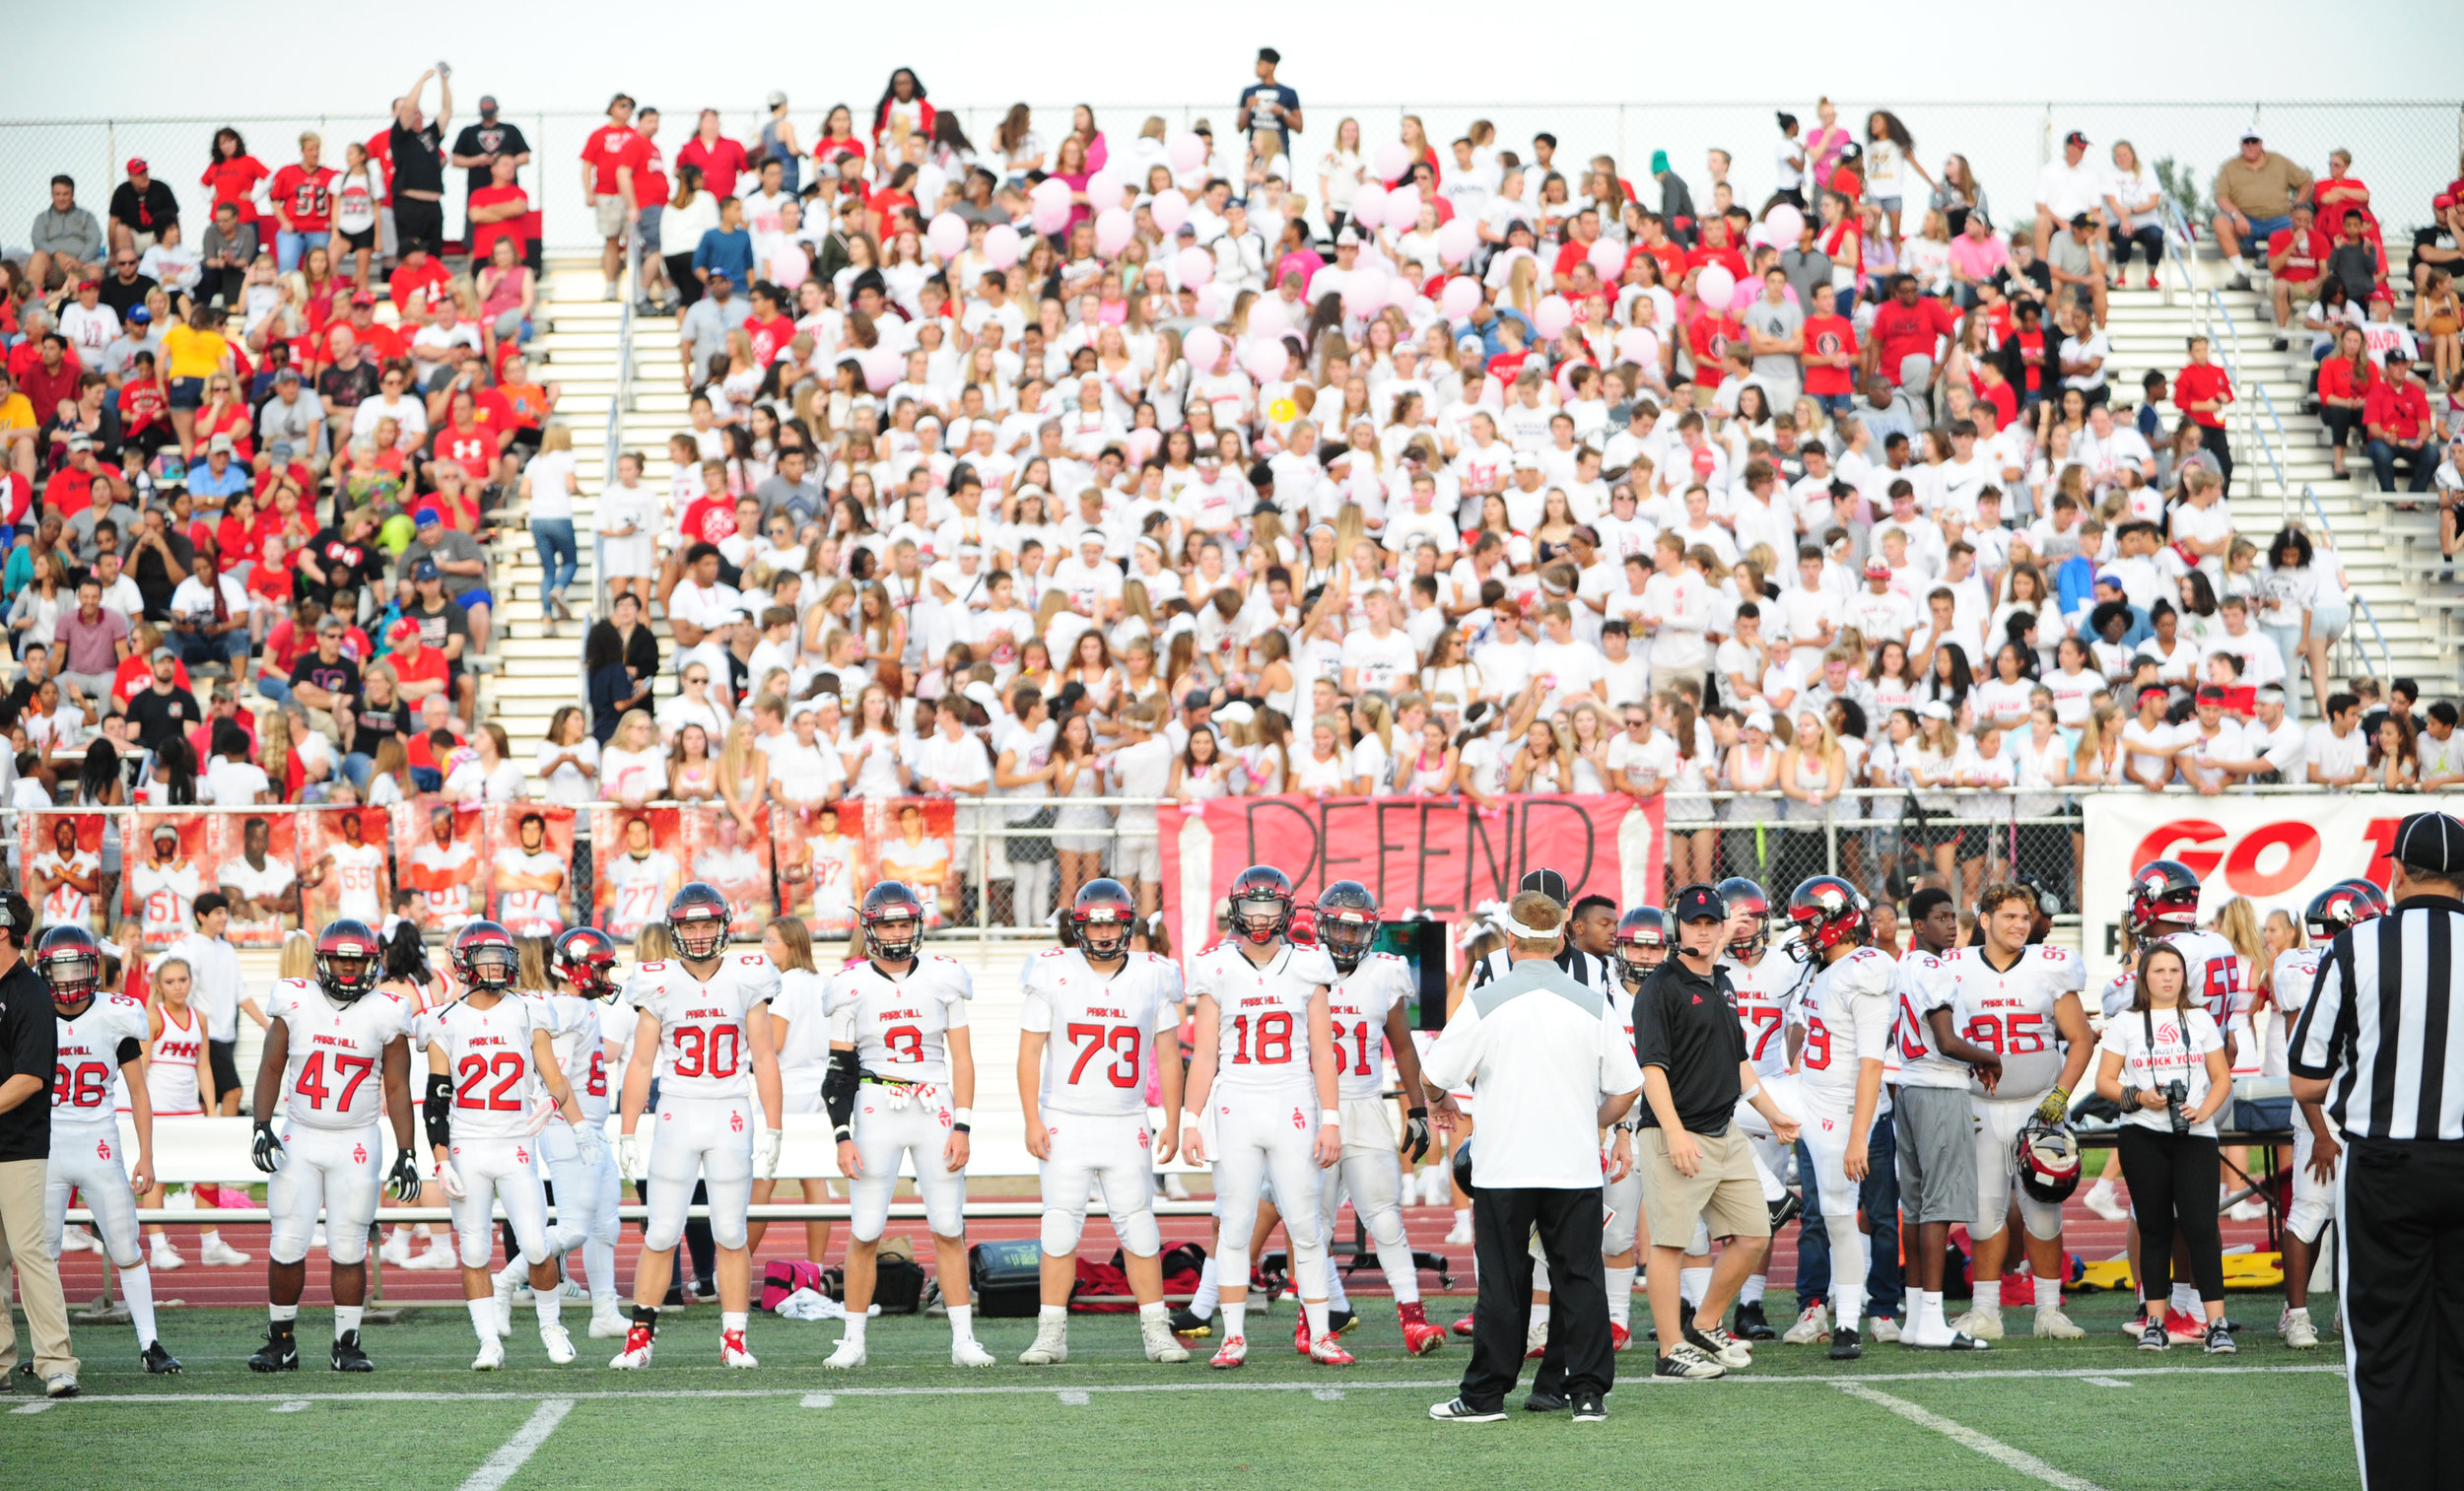 NICK INGRAM/Citizen photo The Park Hill football team waits to begin their game against Park Hill South at a crowded Park Hill District Stadium on Friday, Sept. 1 in Kansas City, Mo. For more on this and other games, see the Sports Weekly section starting on page 7.